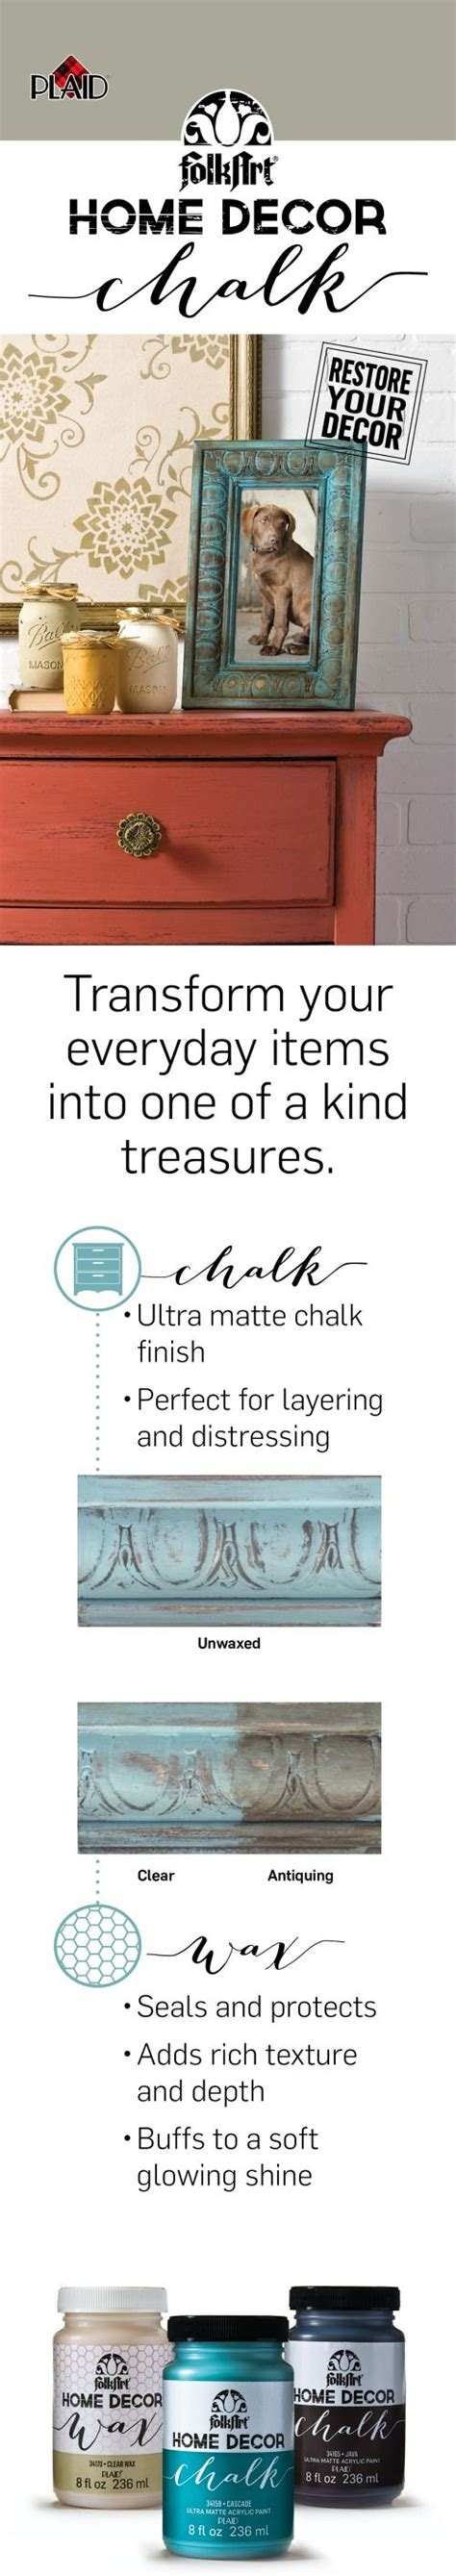 chalk paint tips from the pros 88 best images about folkart home decor chalk paint on